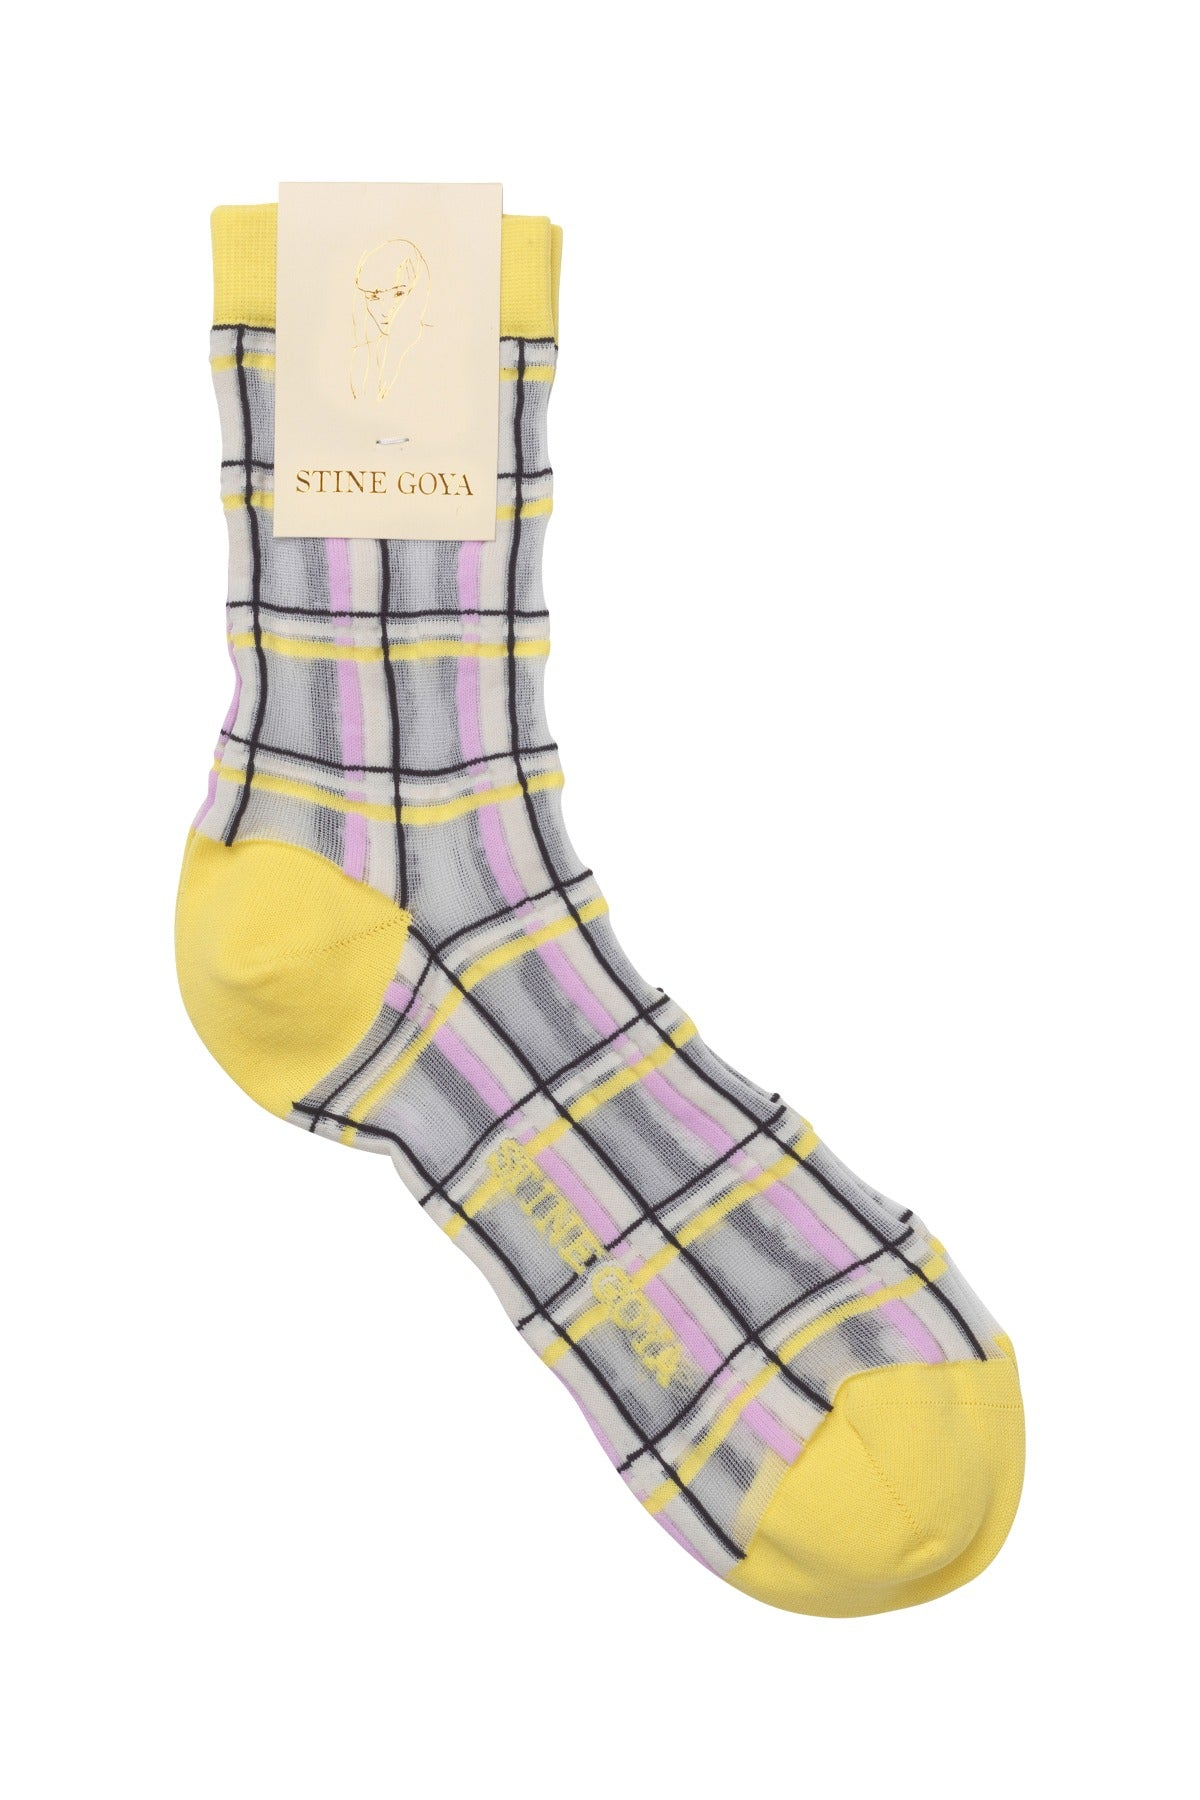 Stine Goya Tilly Socks in Checks